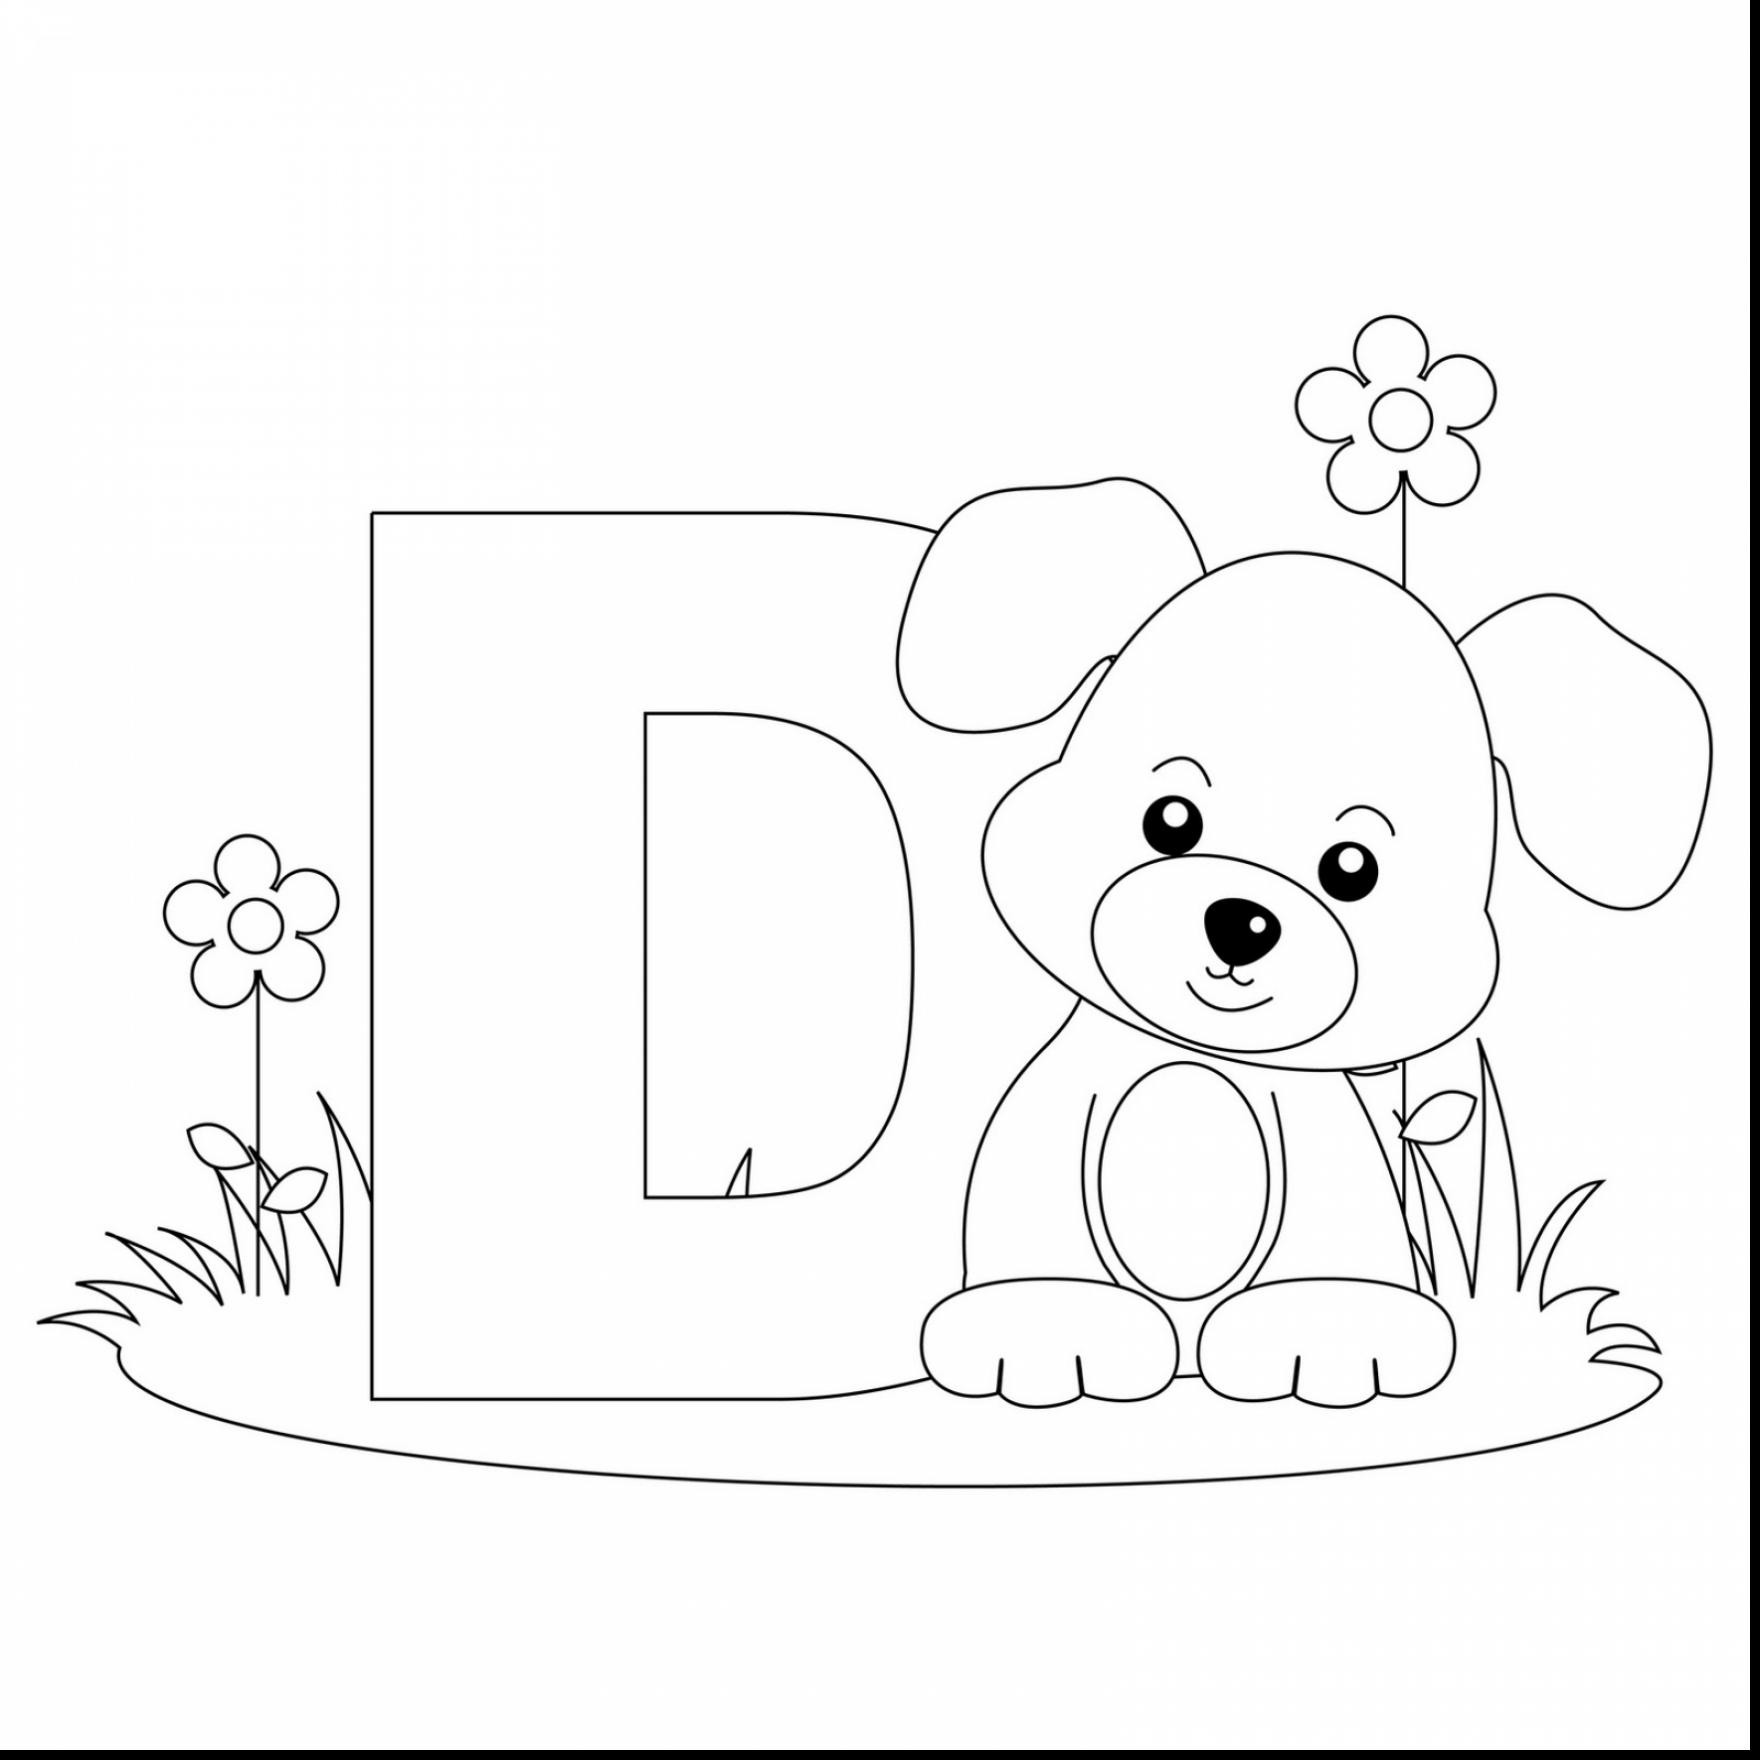 1760x1760 Letter D Coloring Pages Unique Cool Graffiti Words Coloring Pages